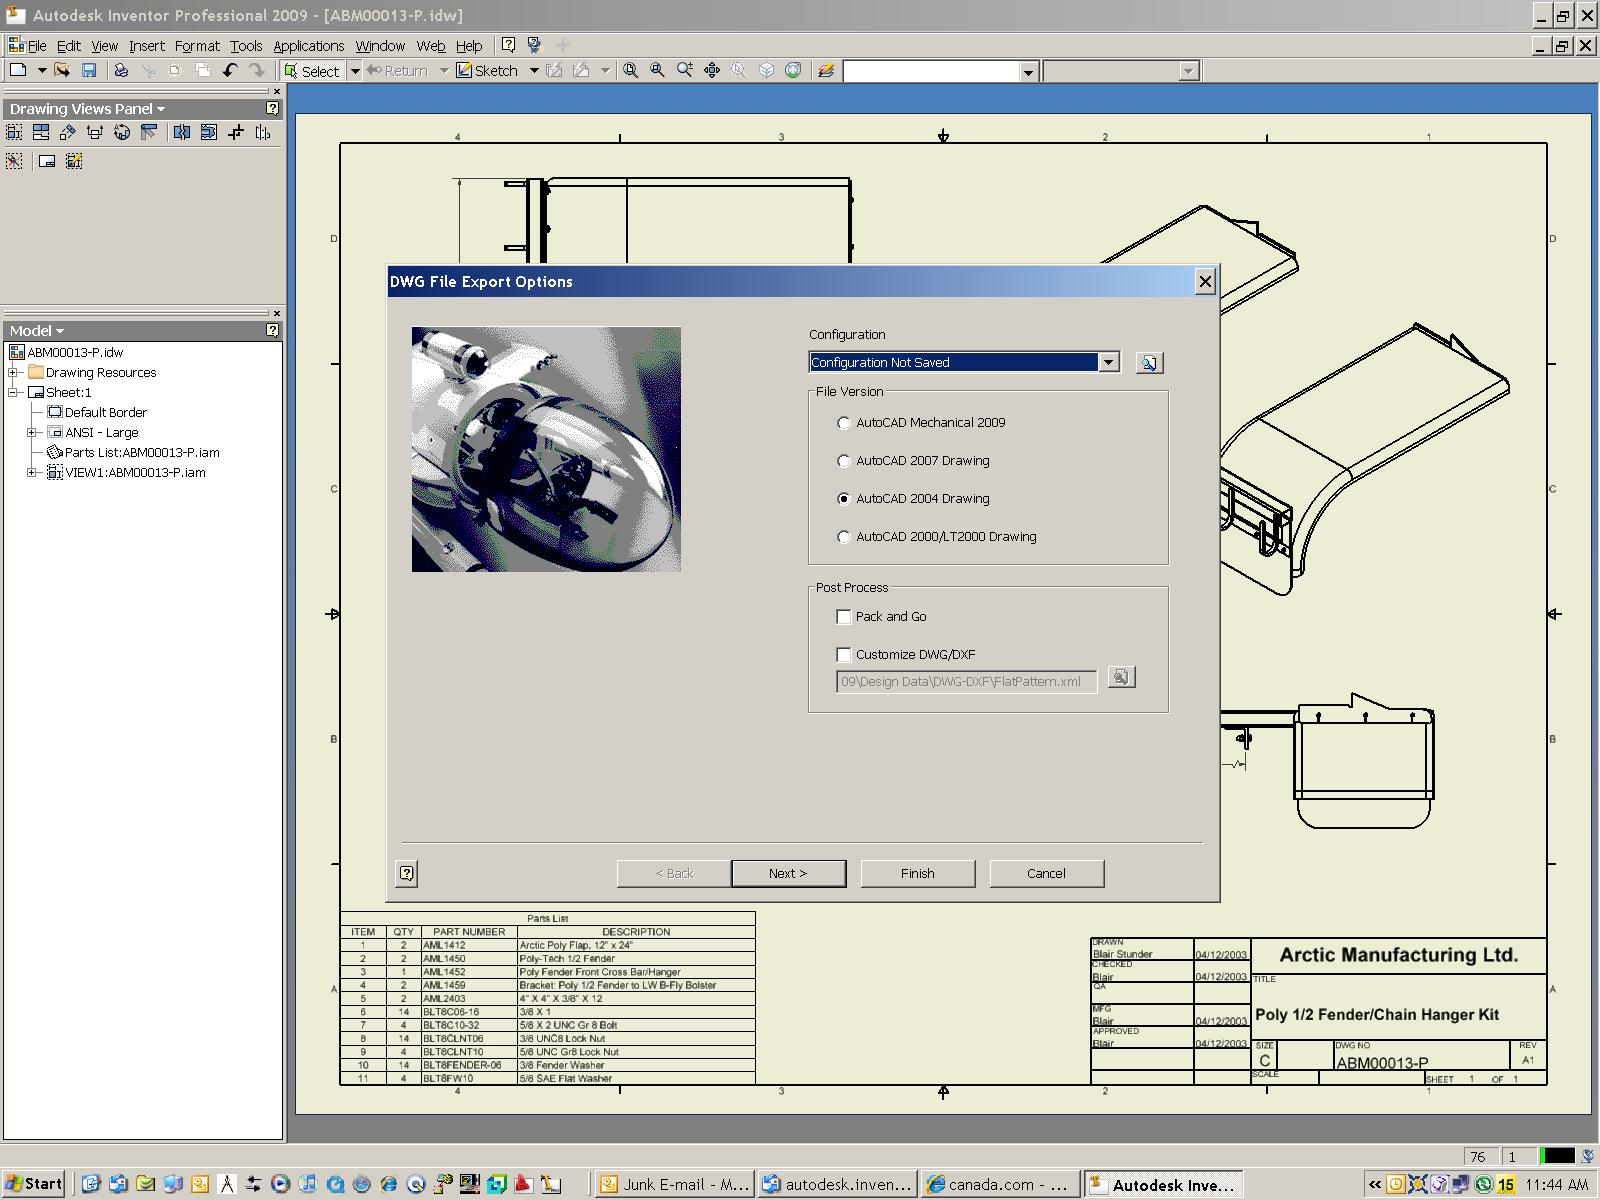 Get AutoCAD LT 2015 for as little as GBP 25 per month with Annual Desktop.